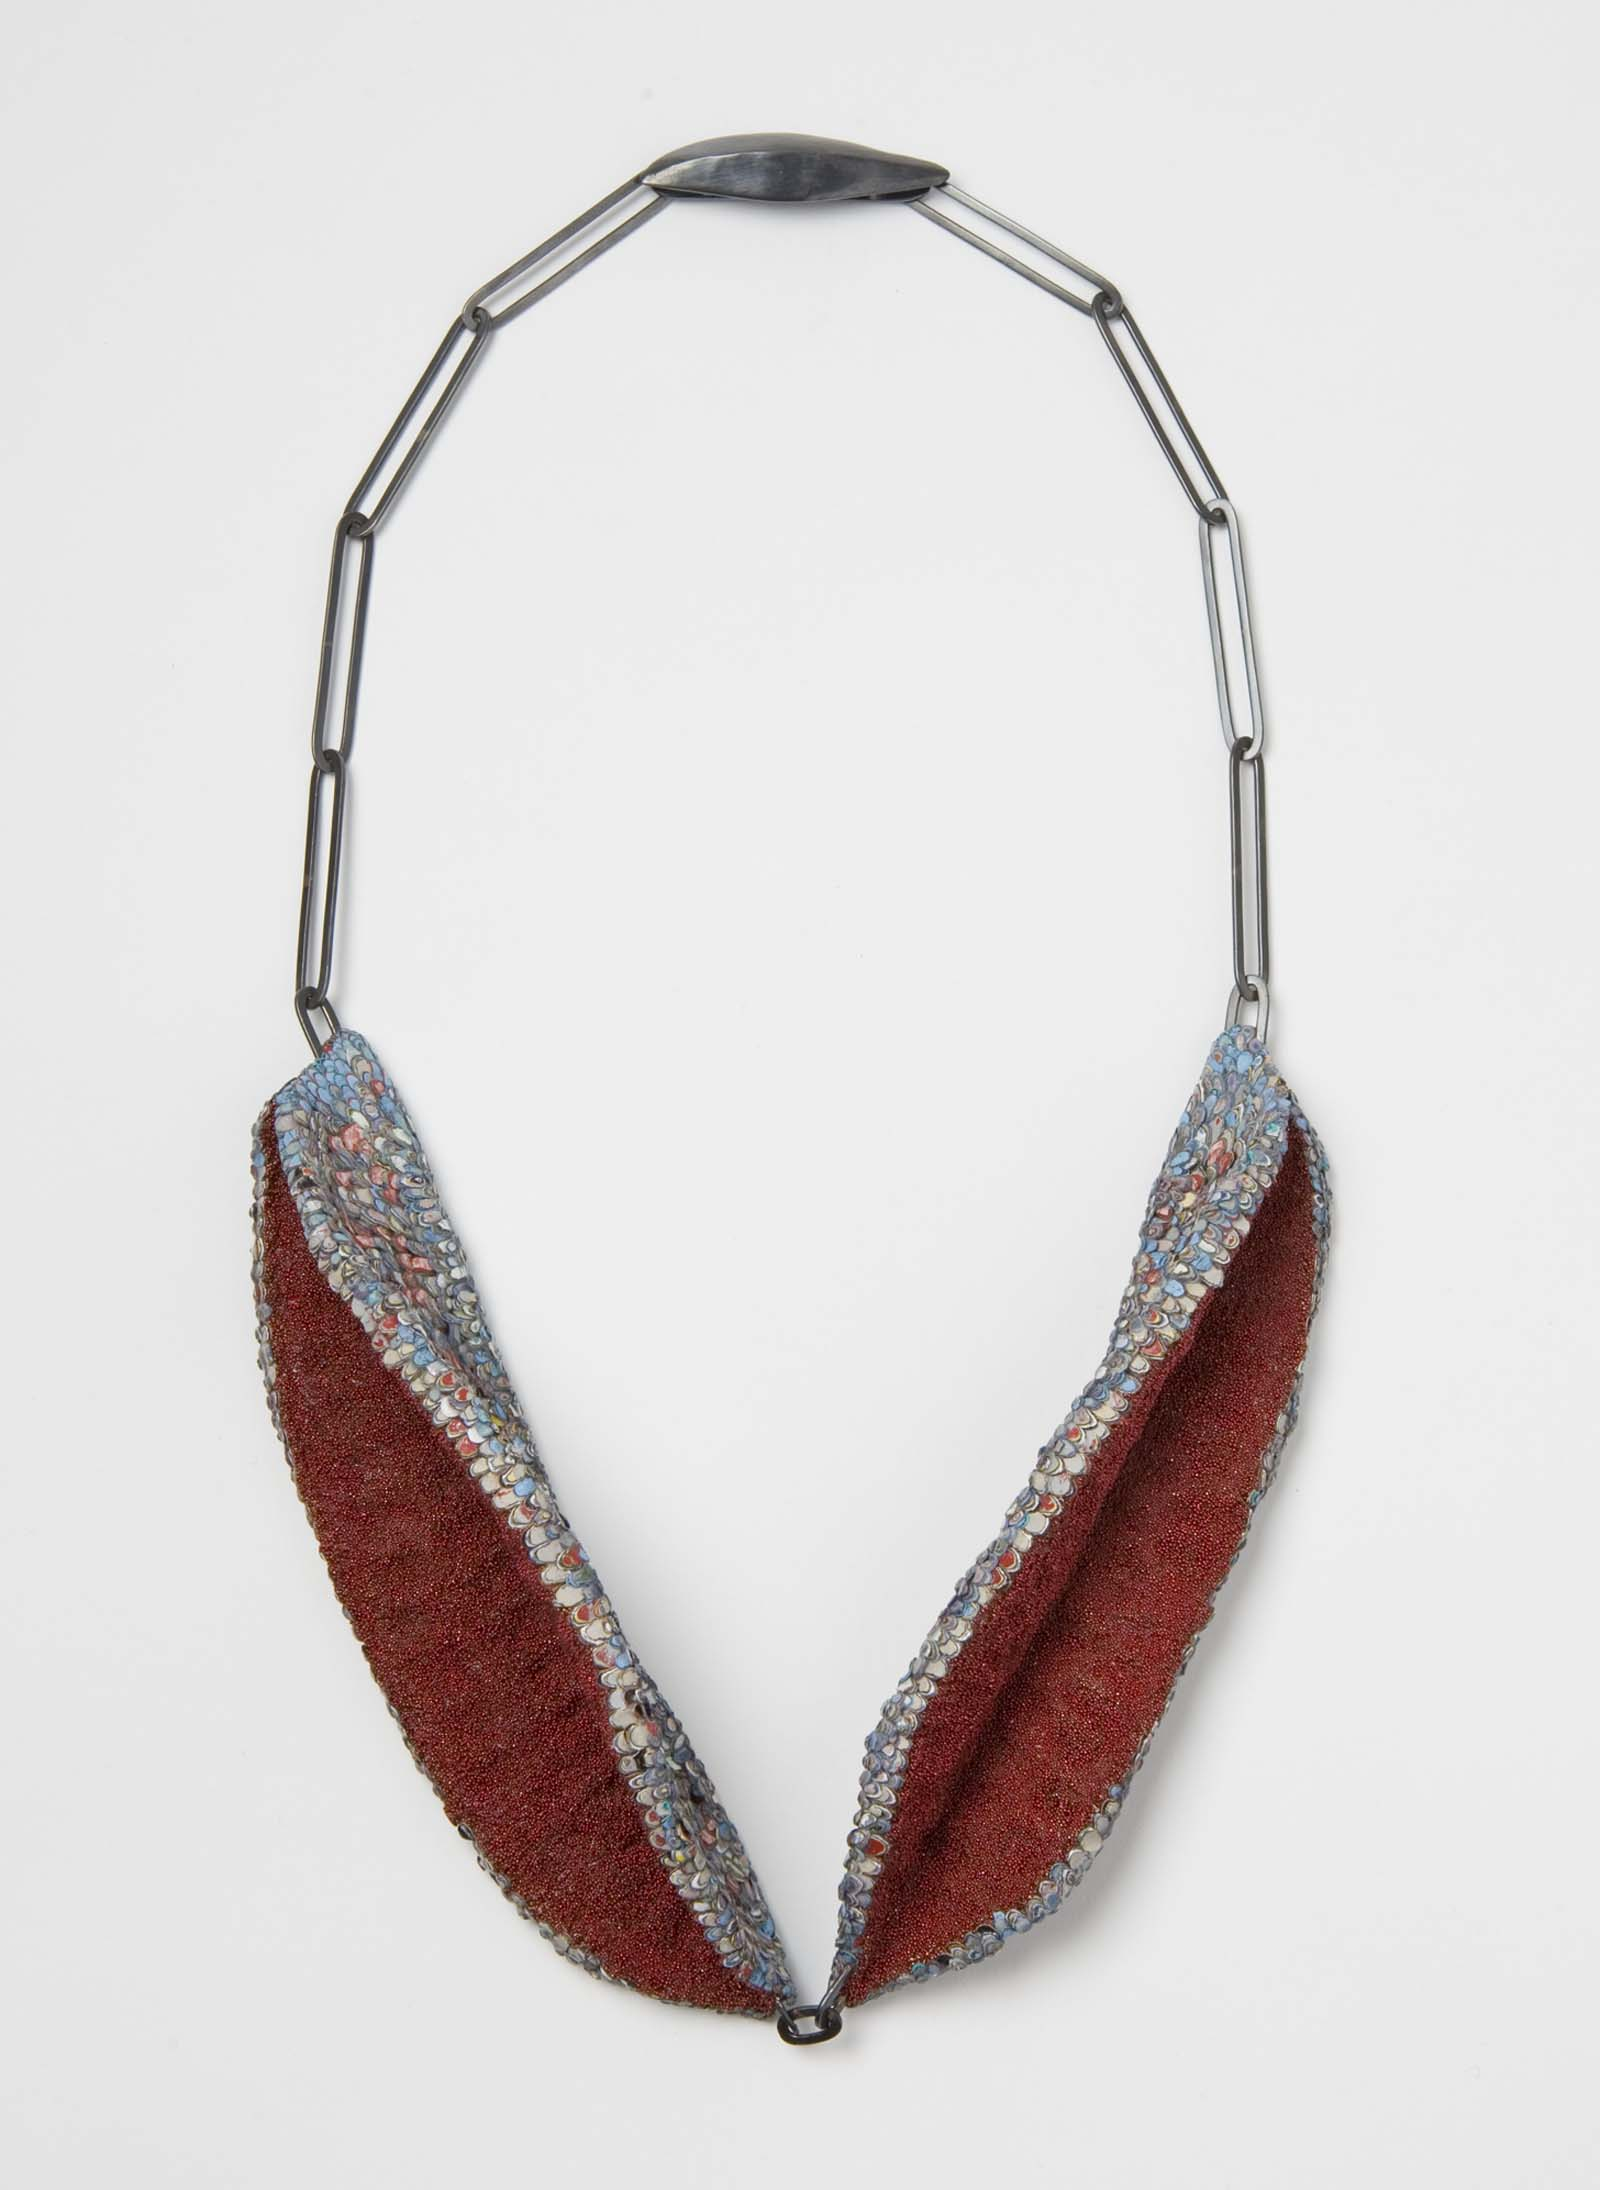 """""""Confessions Of A Hungry Heart"""" I Necklace, 2015 I Seed pods, graffiti, glass, silver  I Photo: Mirei Takeuchi"""